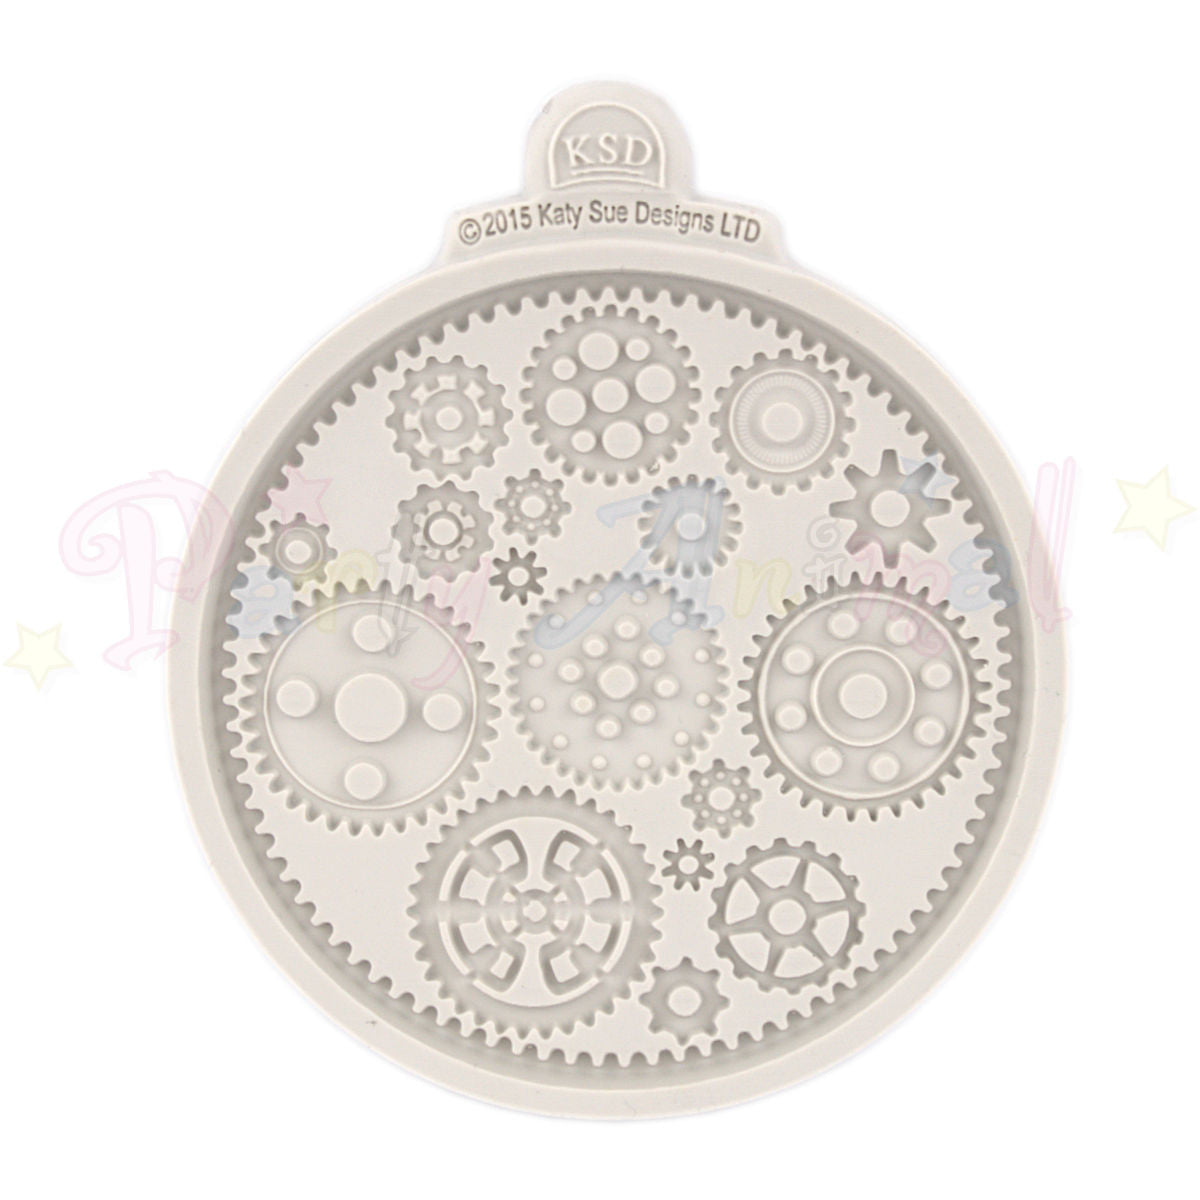 Katy Sue Cupcake Moulds - Cogs and Wheels - Top View